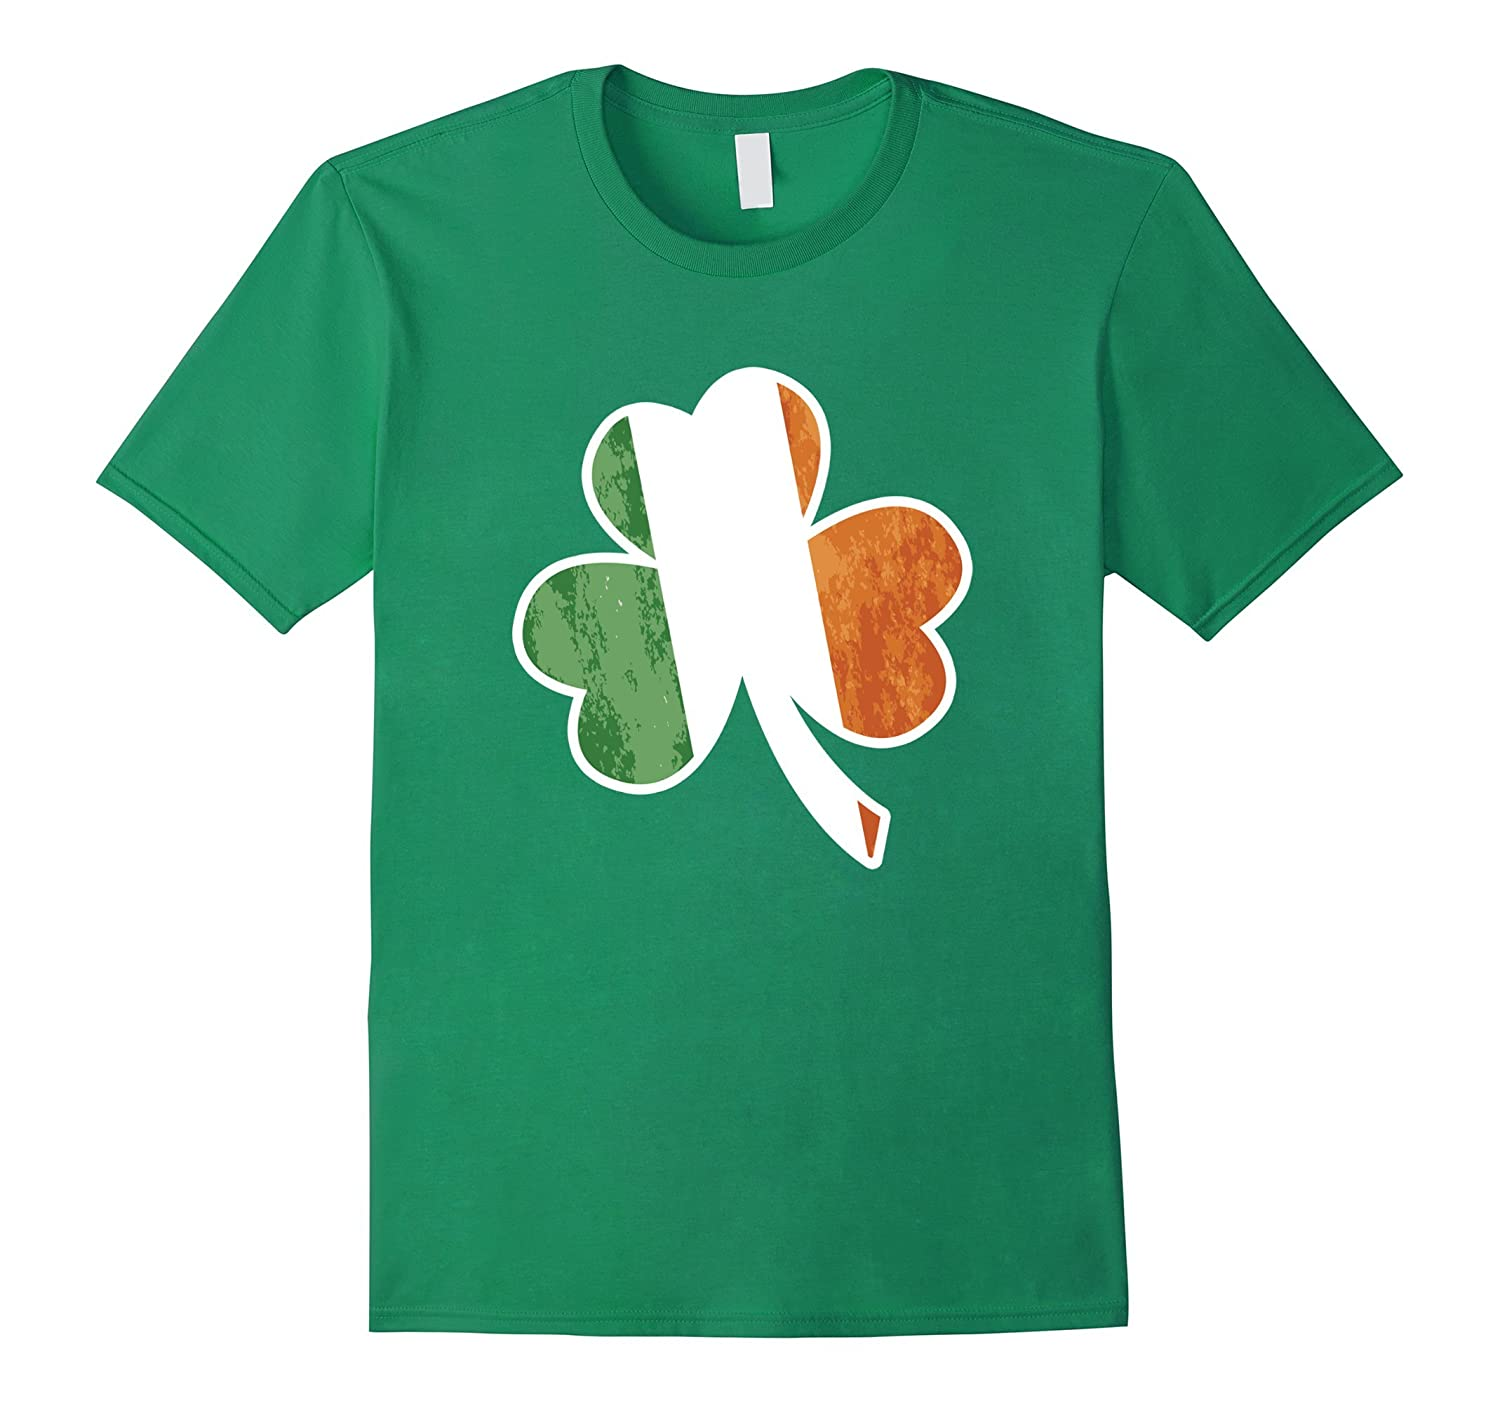 Irish St Patricks Day Flag Shamrock T-Shirt  Green Shirt